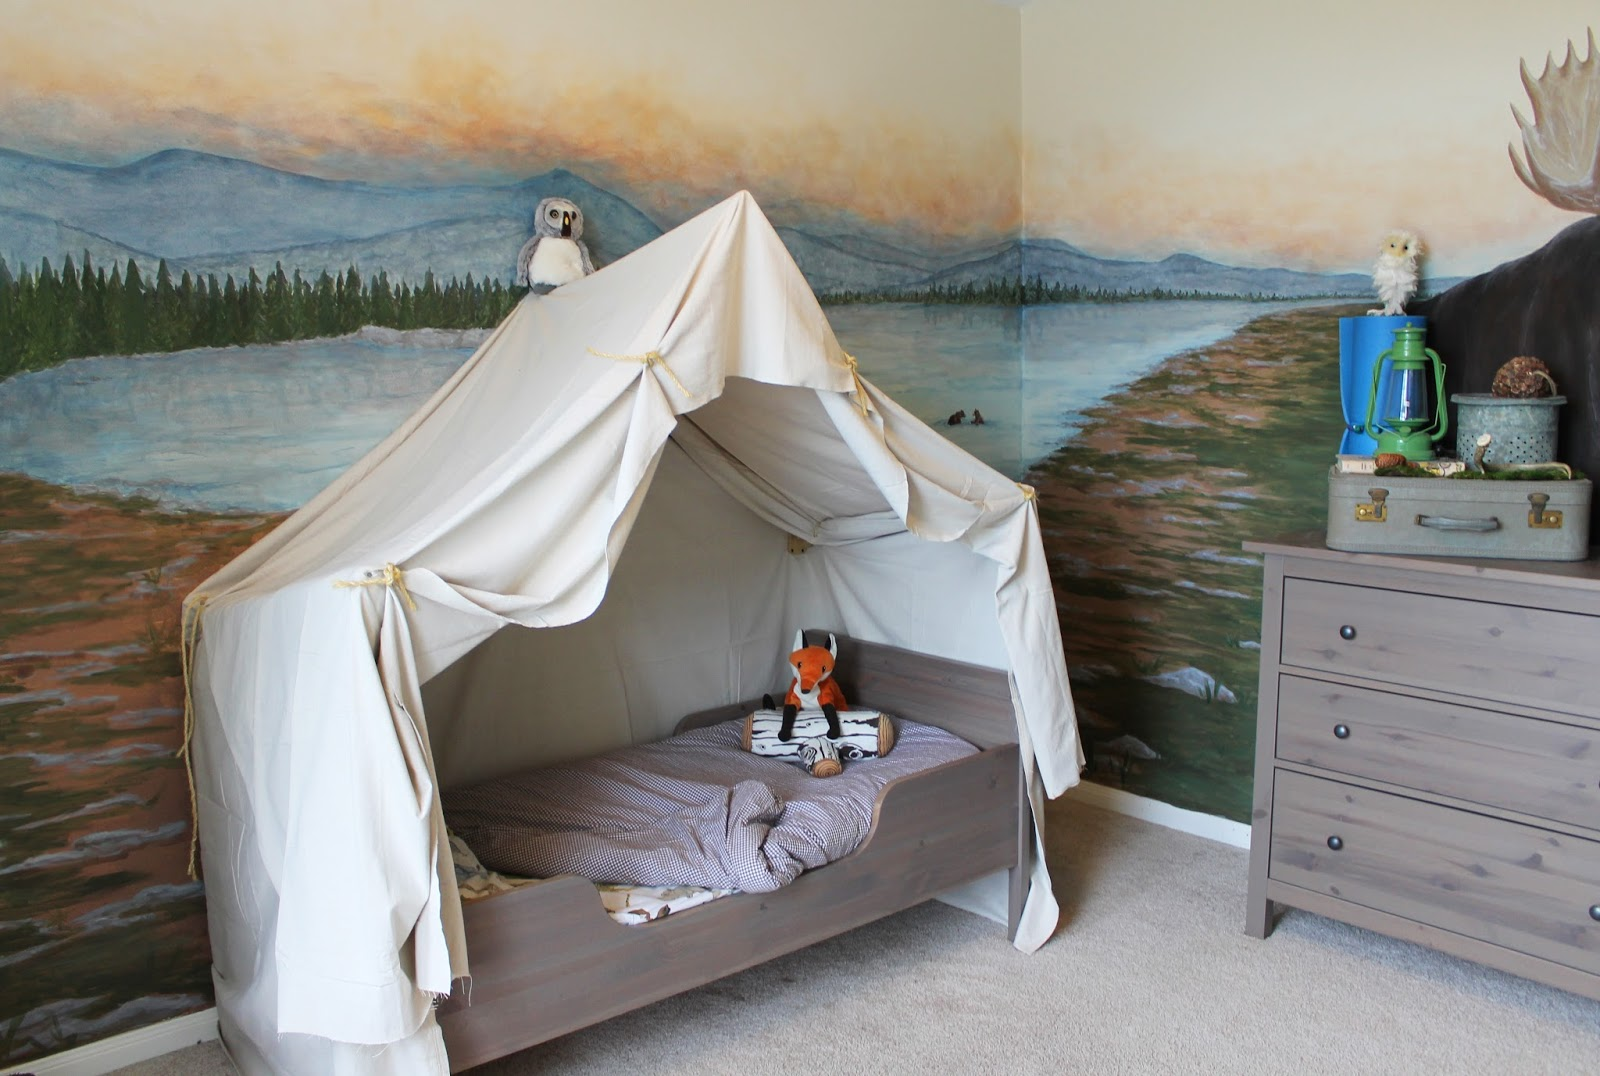 Pottery barn kids camp bed - I Staged The Dresser With Everything You D Need On A Camping Trip Foam Mat Vintage Suitcase Vintage Minnow Bucket Lantern From Pottery Barn Which I